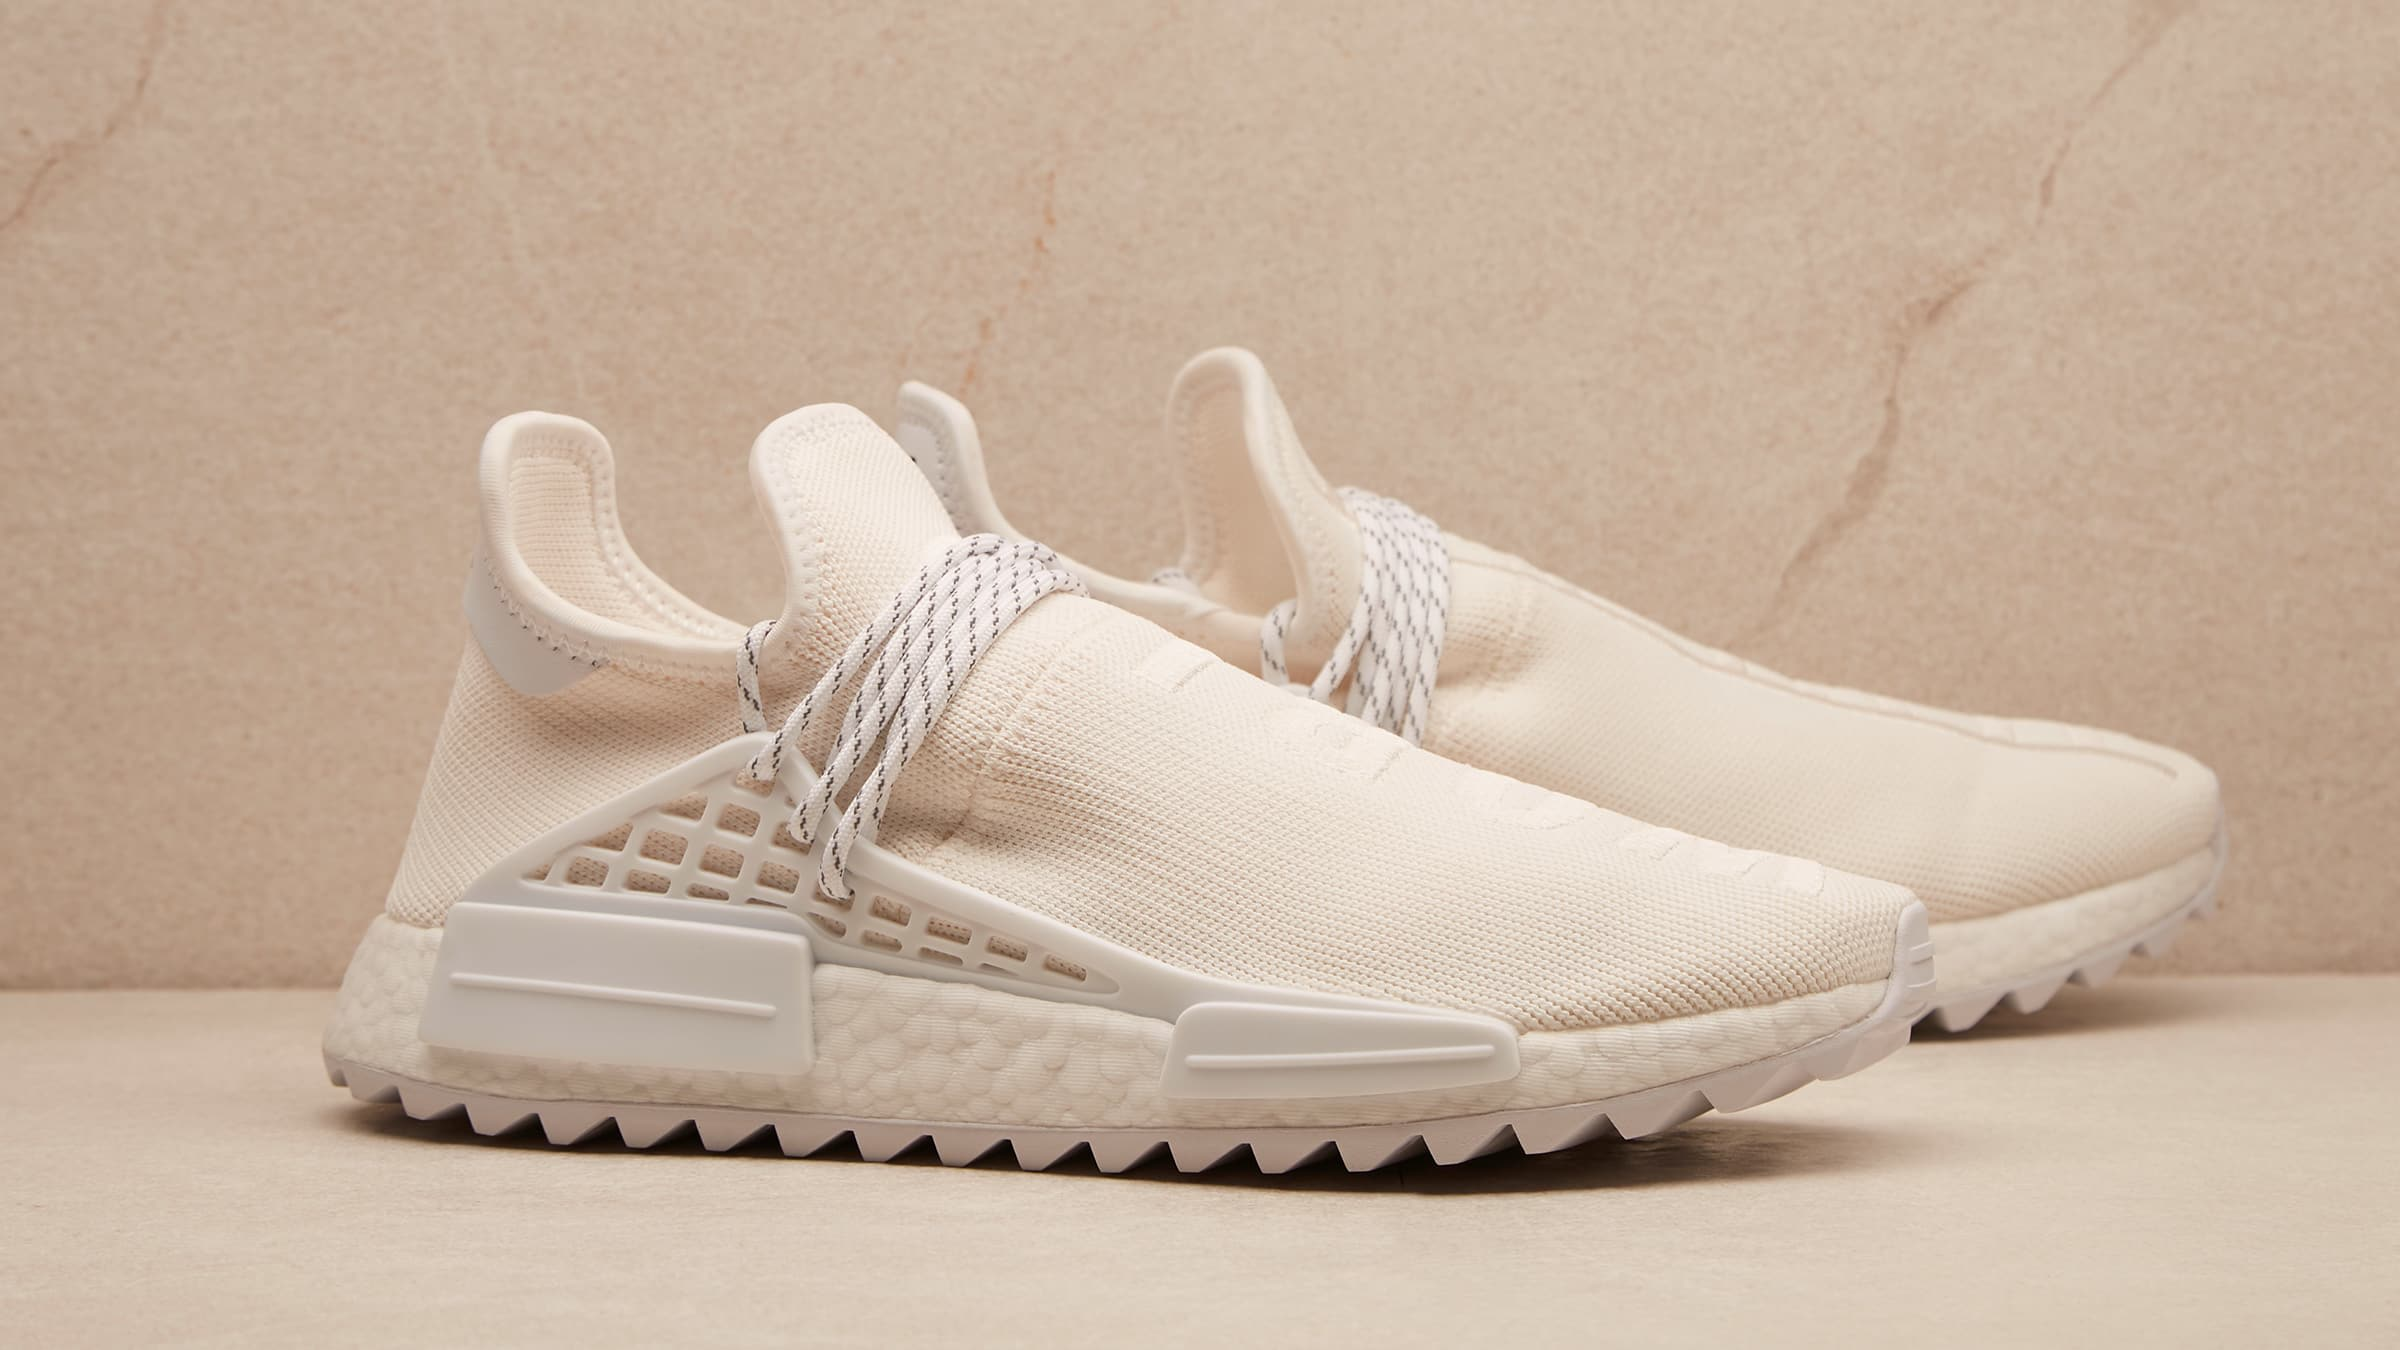 san francisco e0d27 ea644 END. Features | adidas Originals x Pharrell Williams 'Blank ...